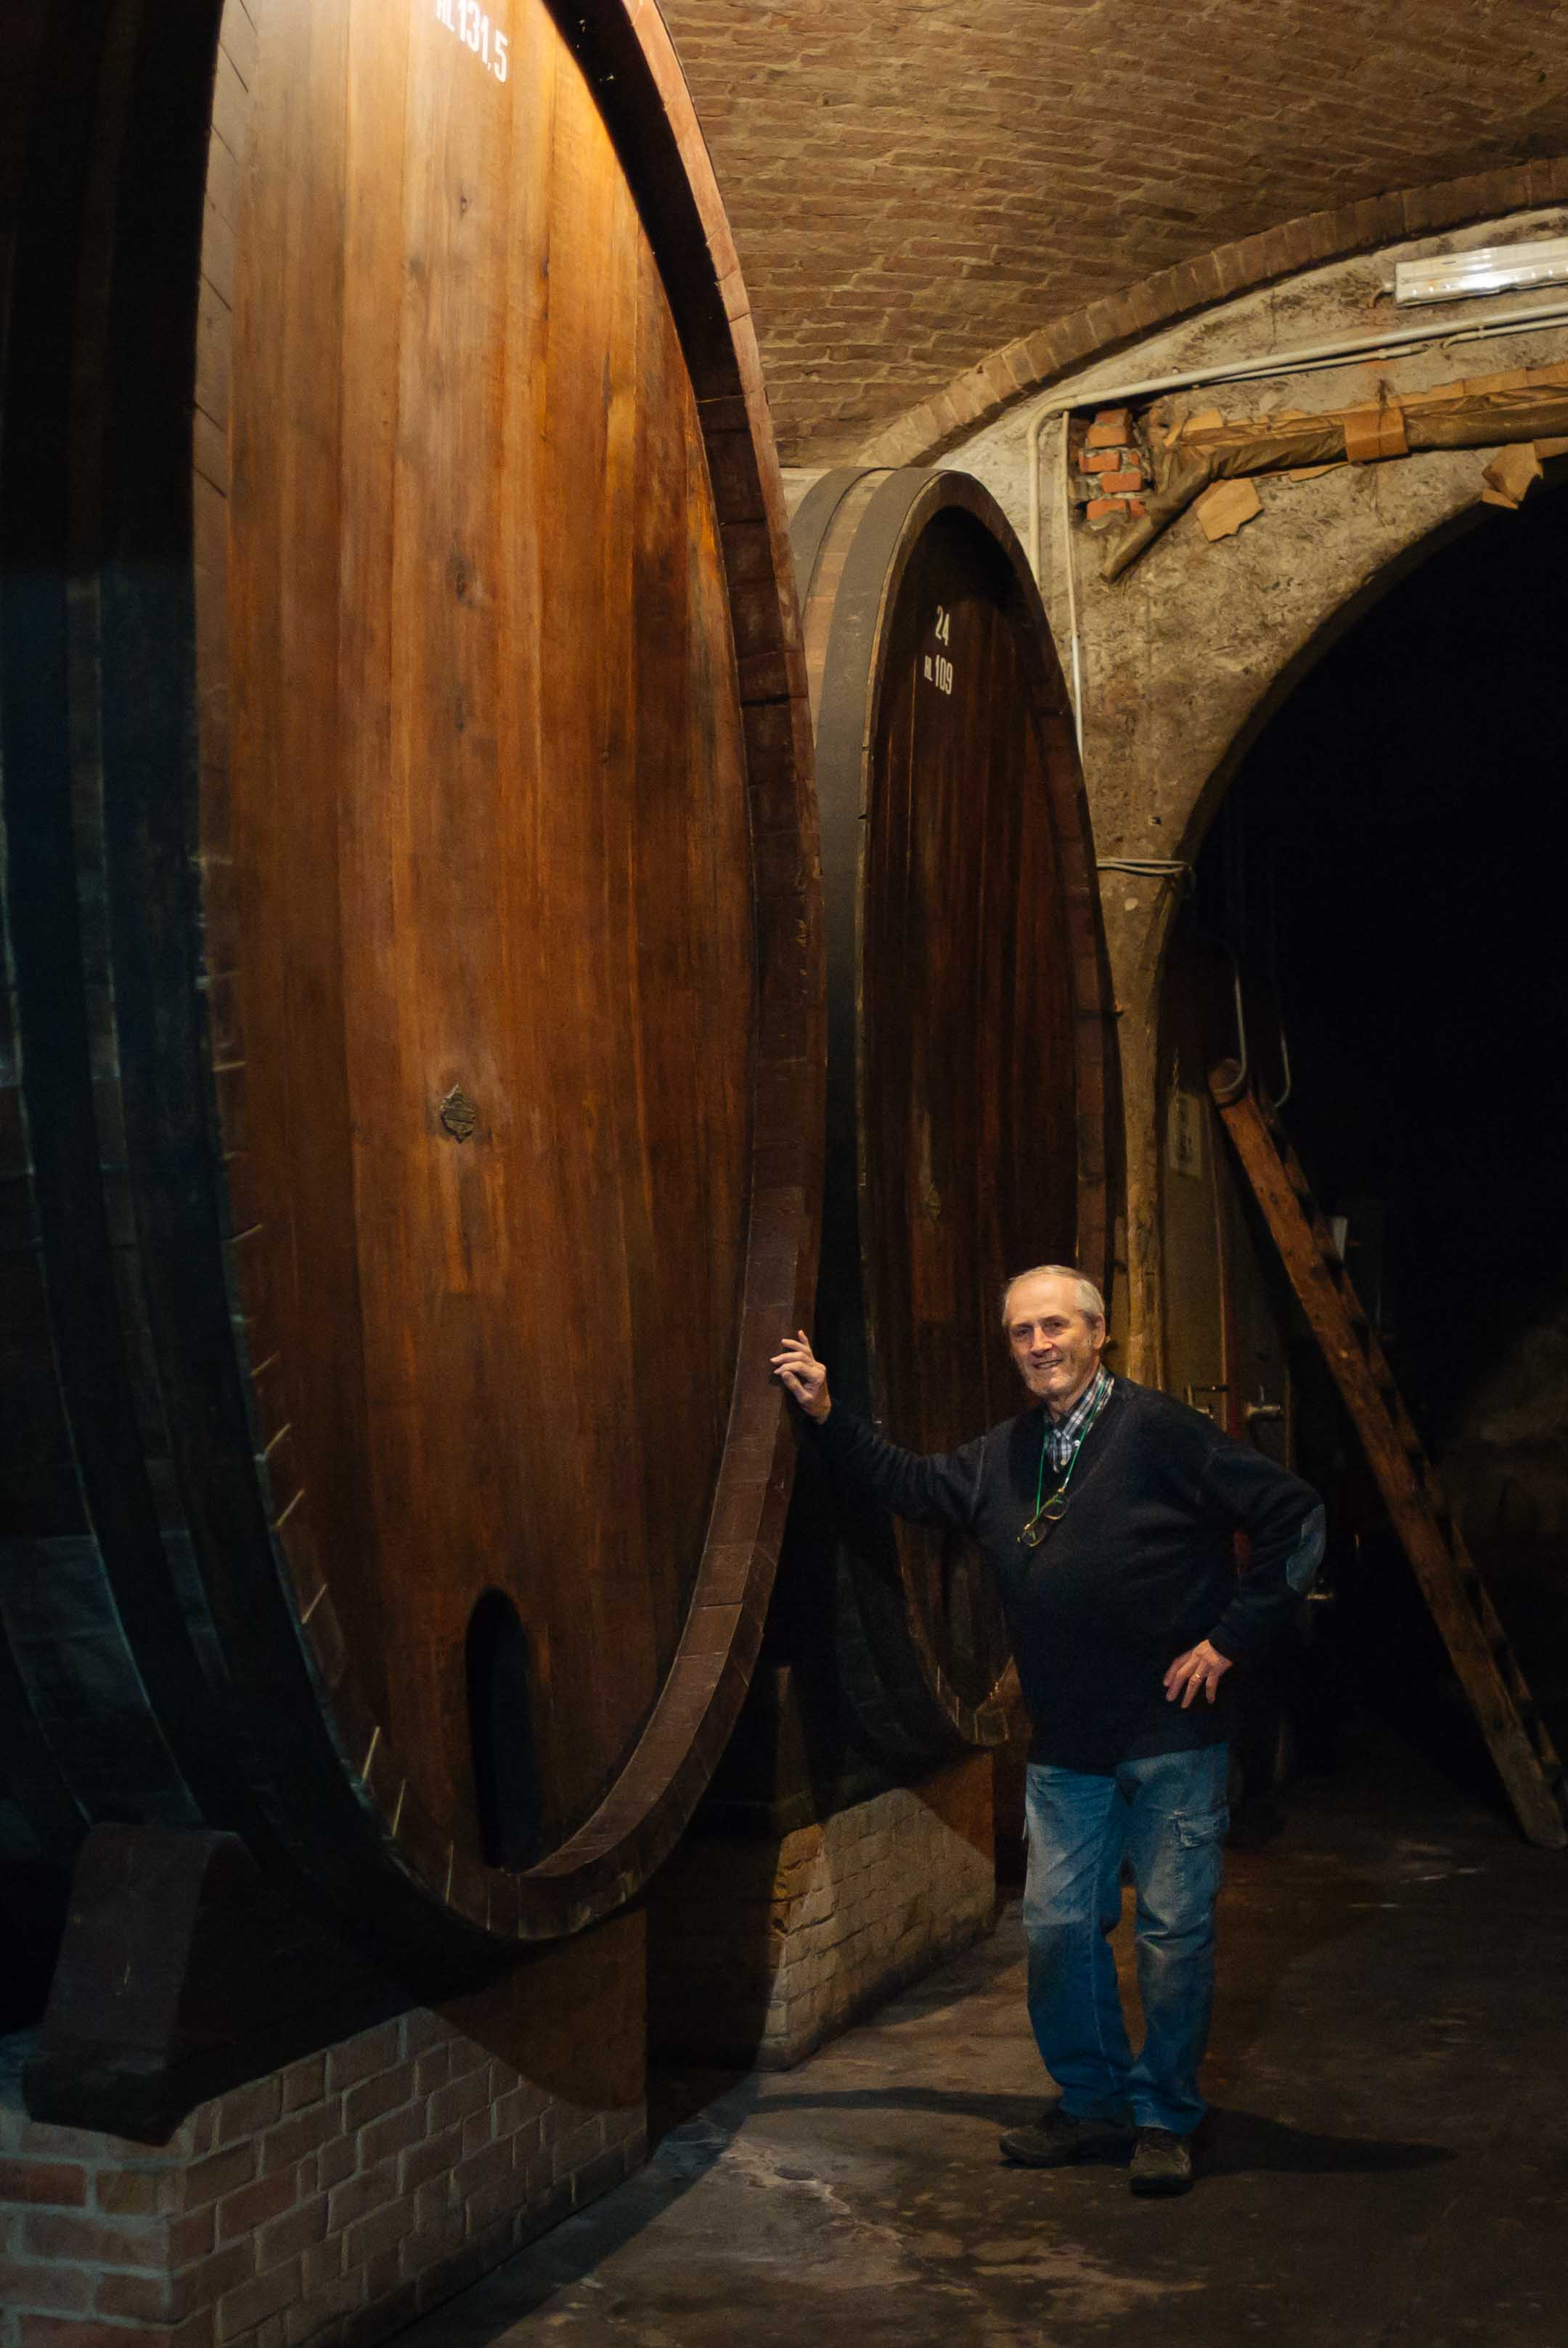 Winemaker Mauro Mascarello at Giuseppe Mascarello winery in Barolo Piedmont Italy with the historic barrels his grandfather had custom made for the winery